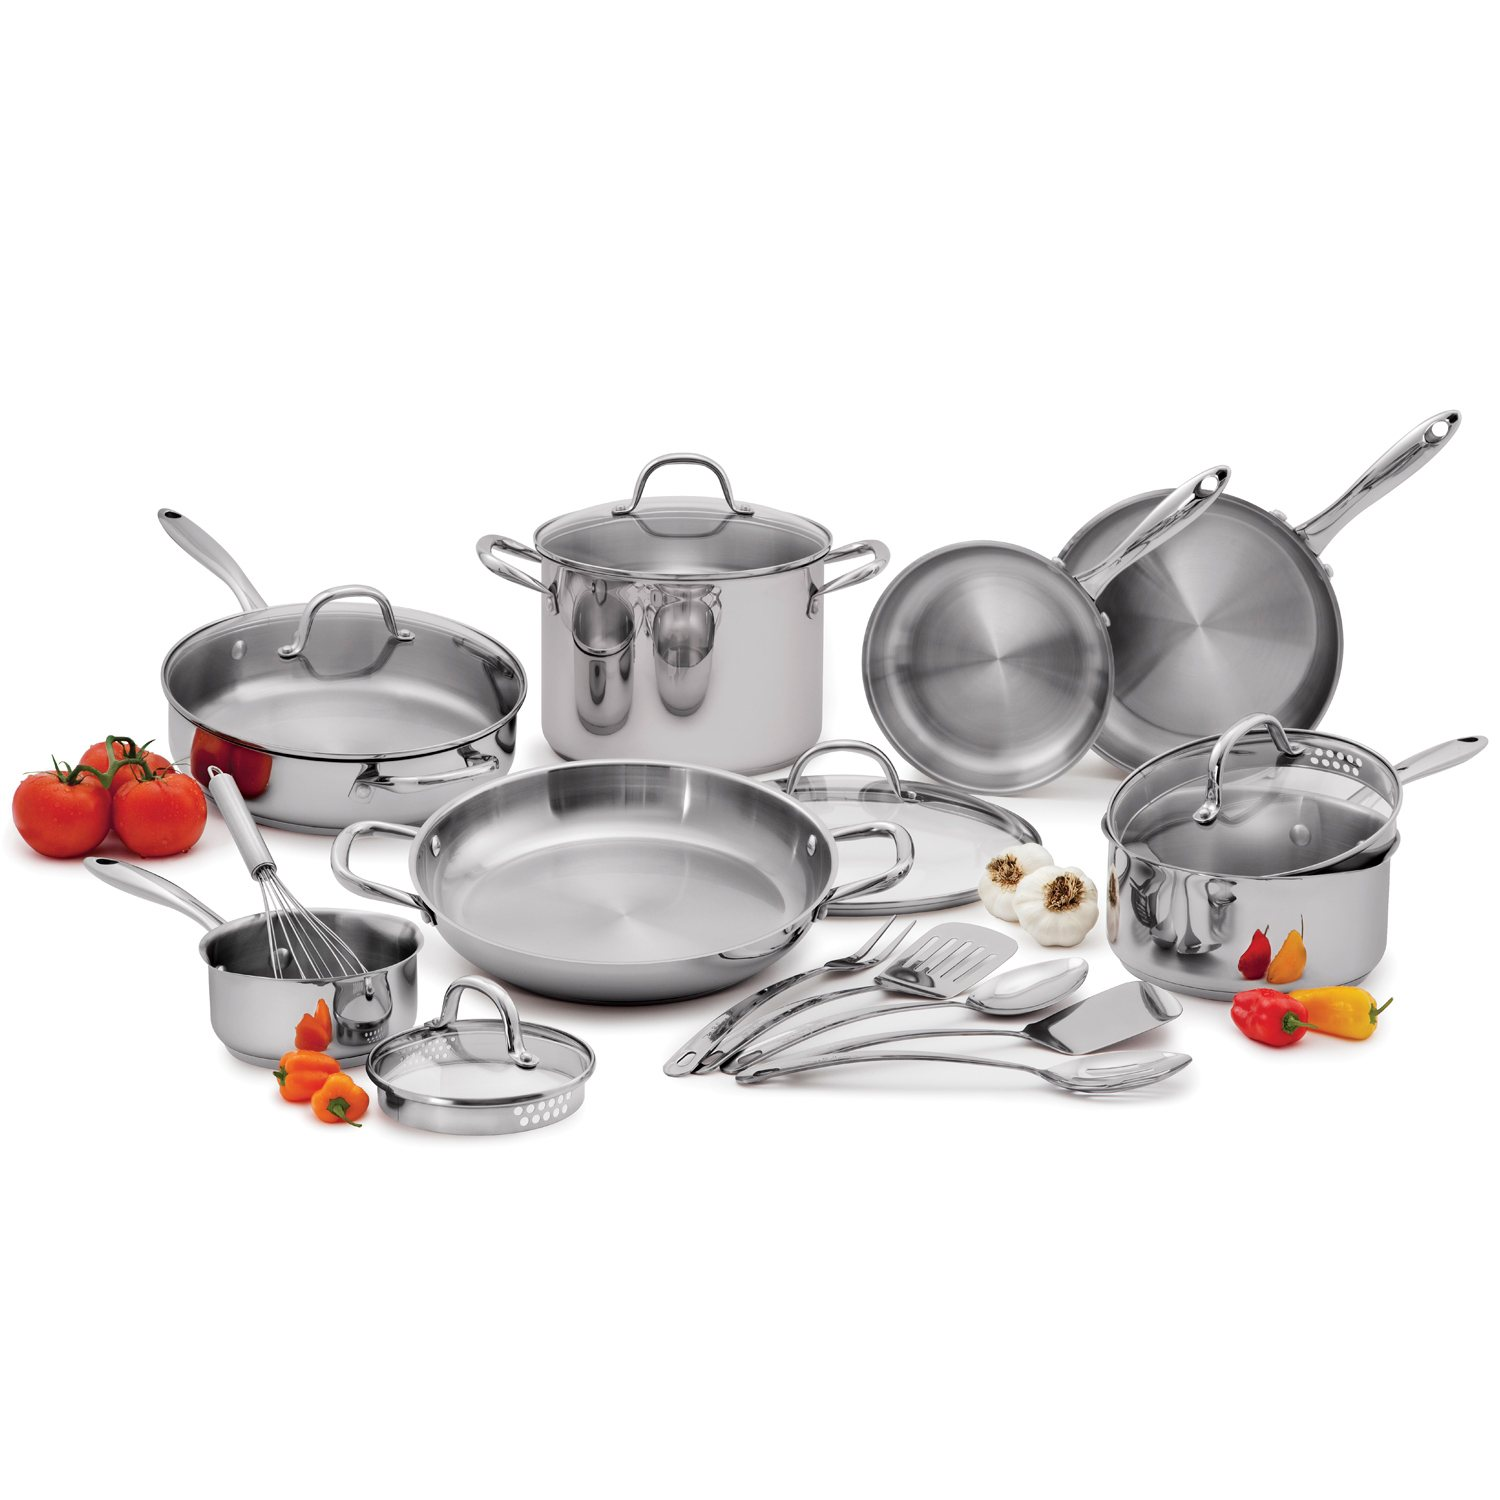 Details about 18pc Wolfgang Puck Stainless Steel Cookware